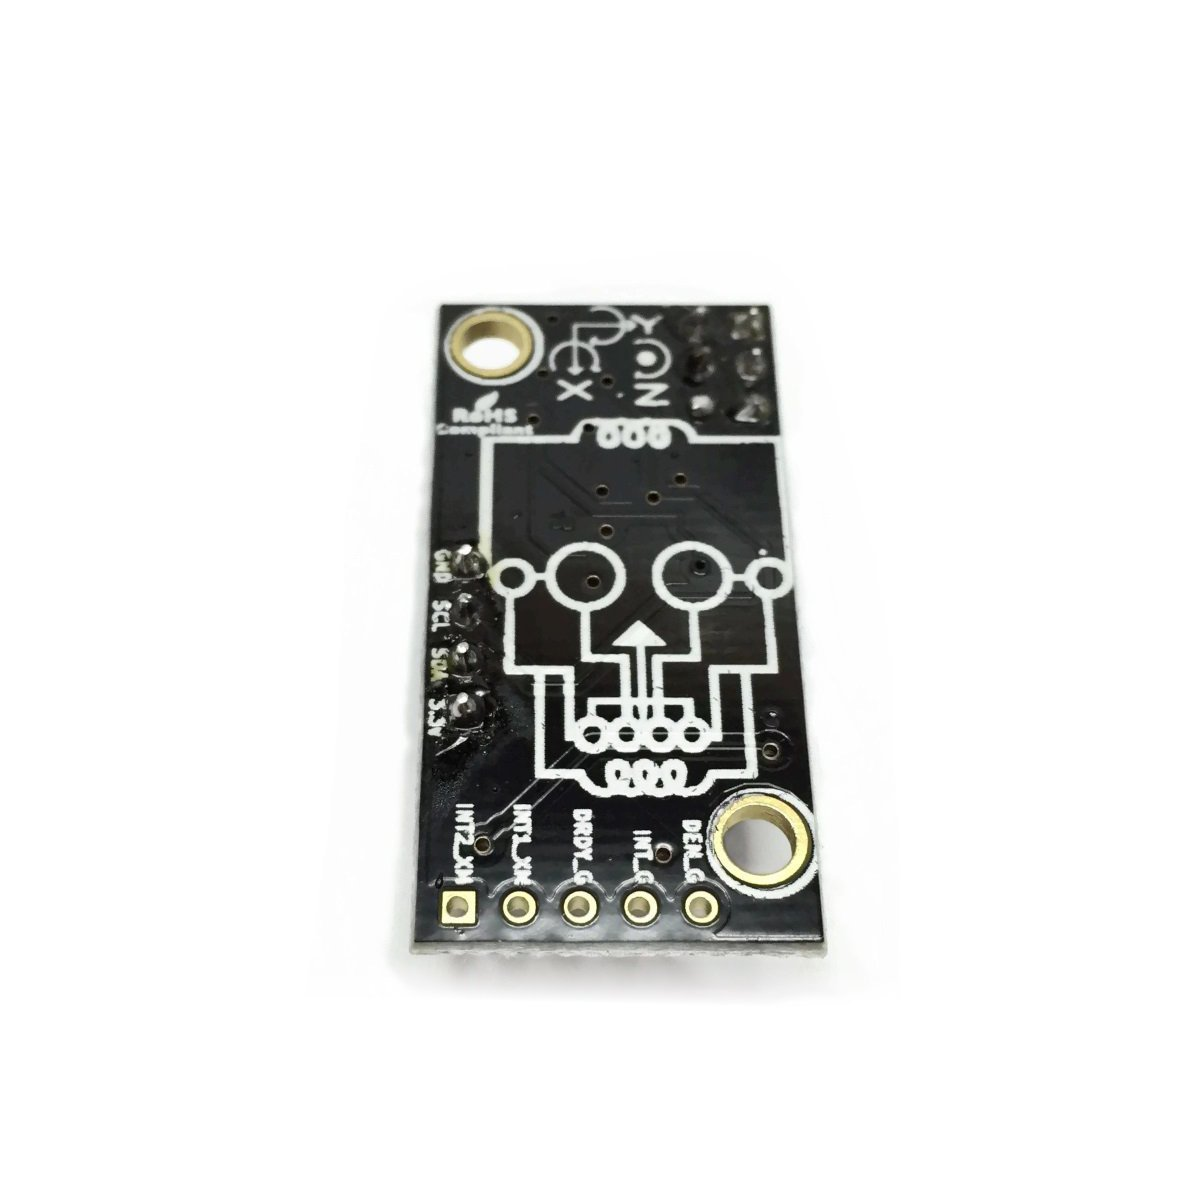 BerryIMUv2-accelerometer, gyroscope, magnetometer from